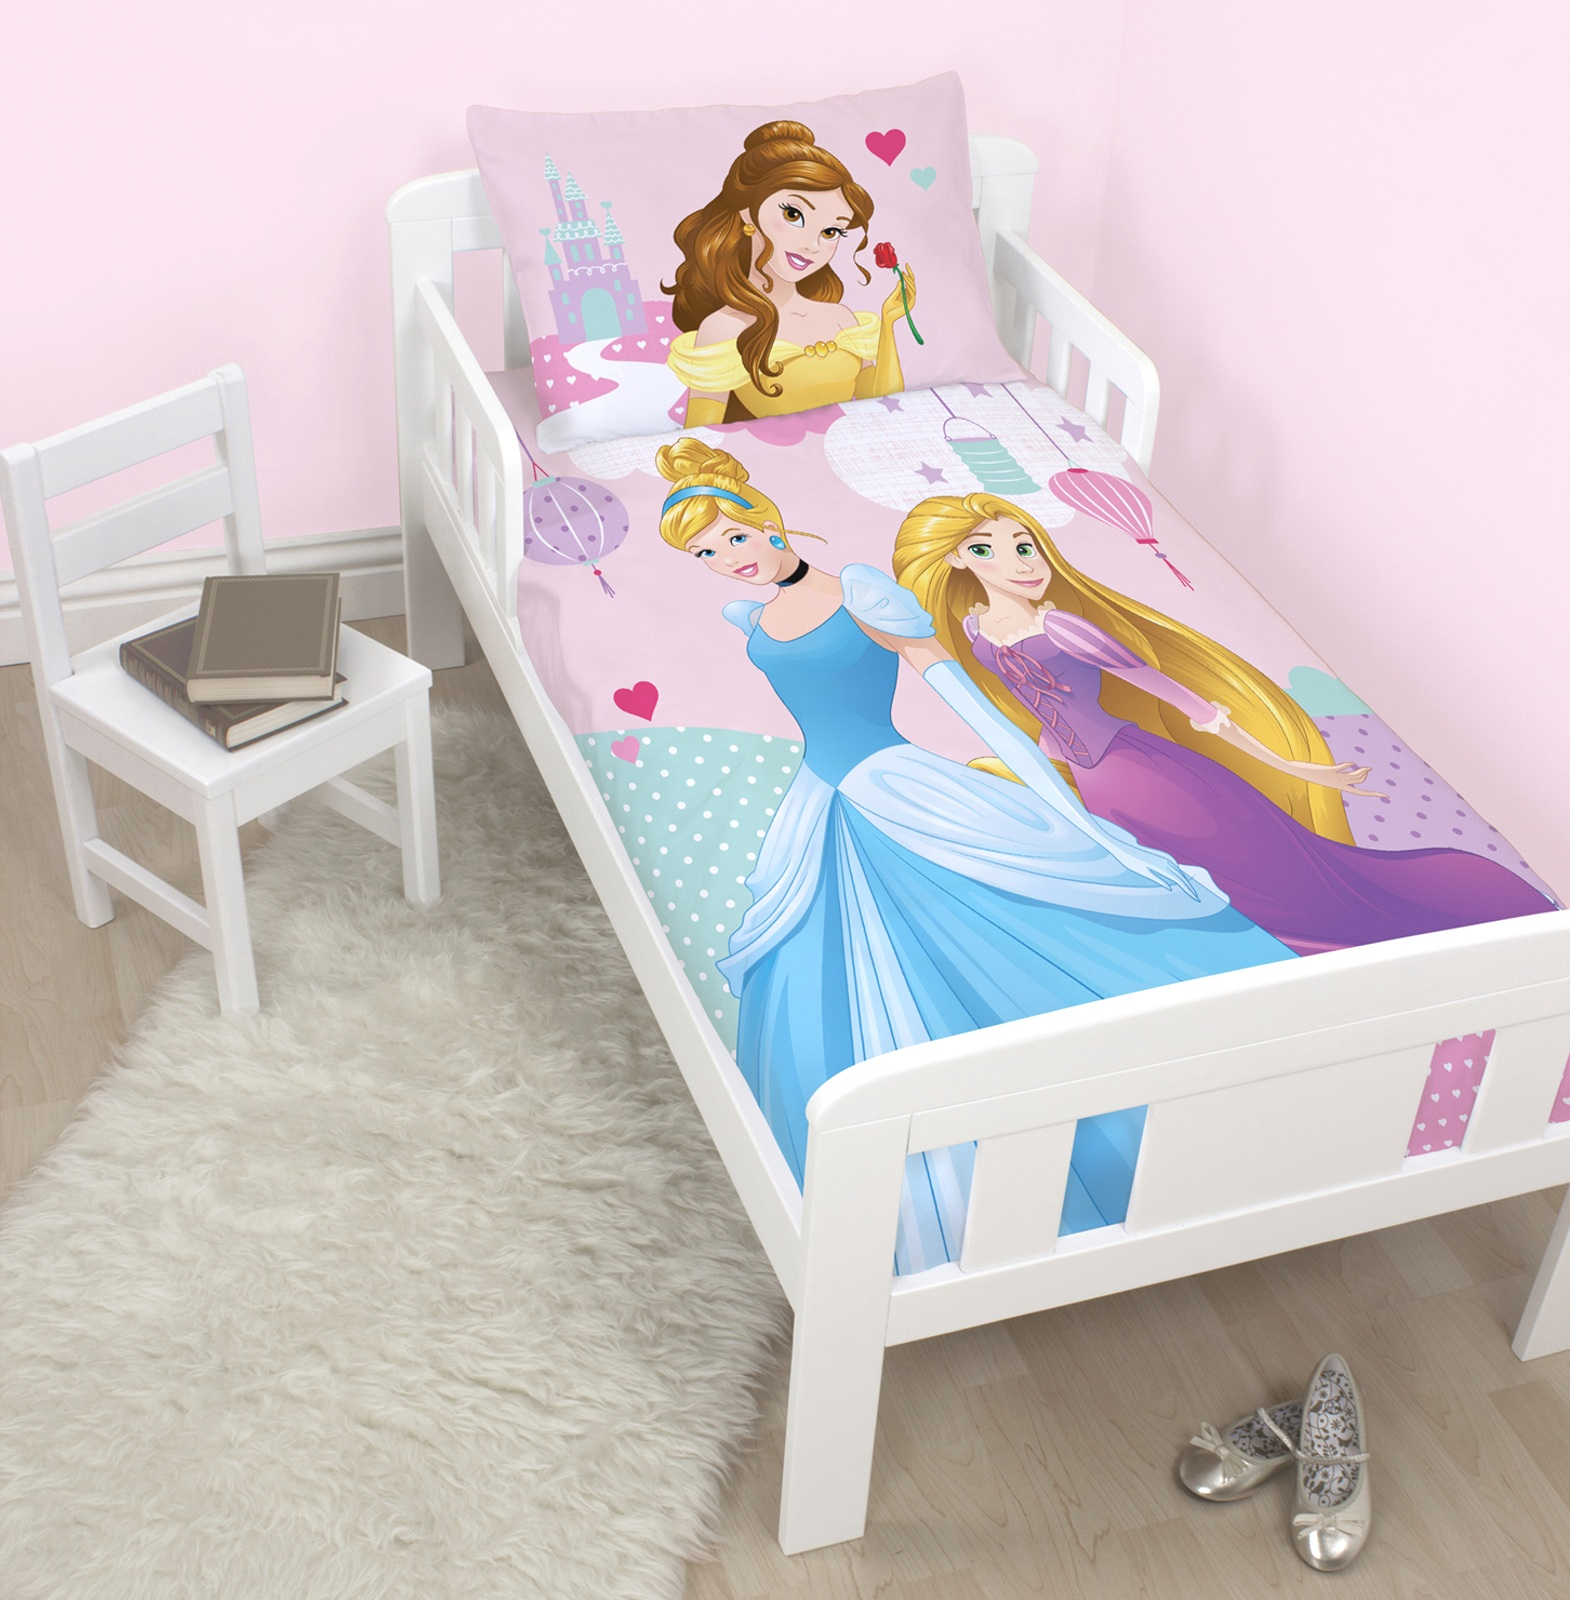 Disney princess 39 enchanteur 39 junior ensemble de housse de - Housse de couette 60x120 ...